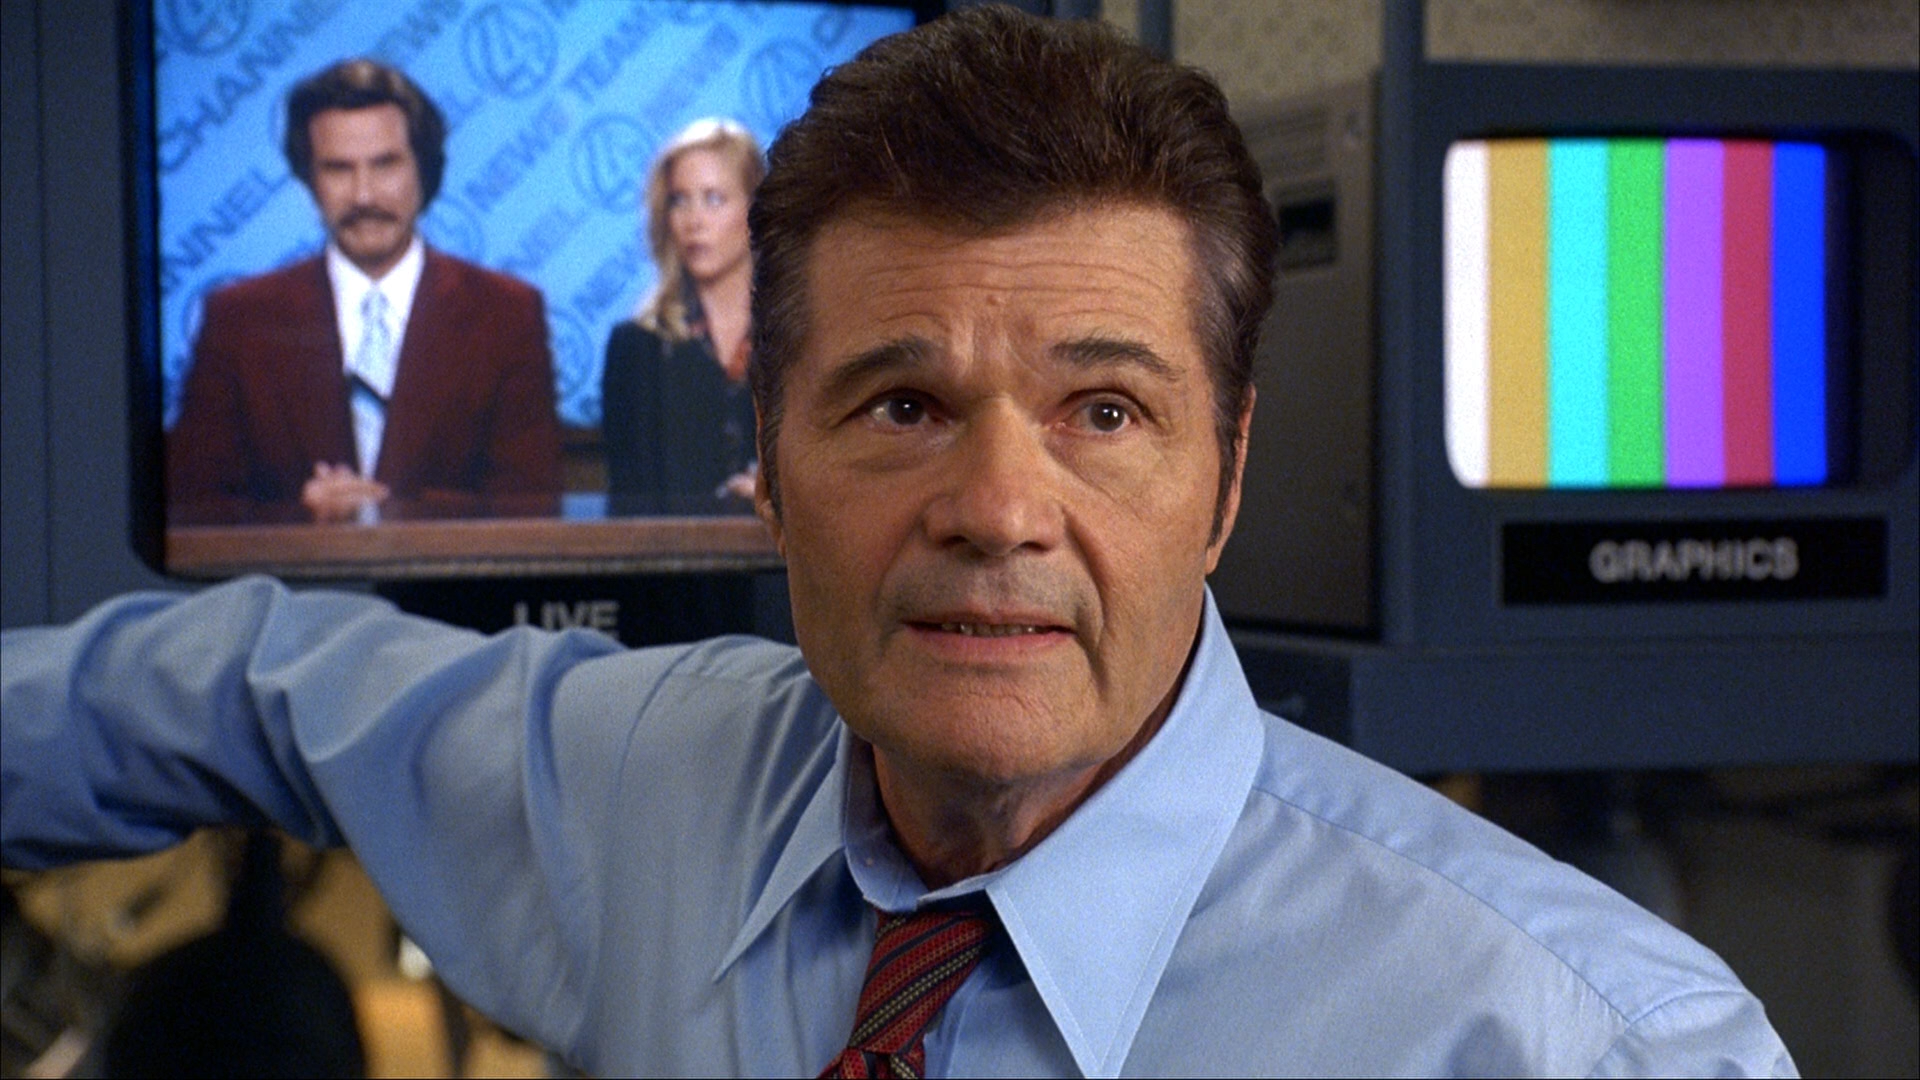 Fred Willard click to close